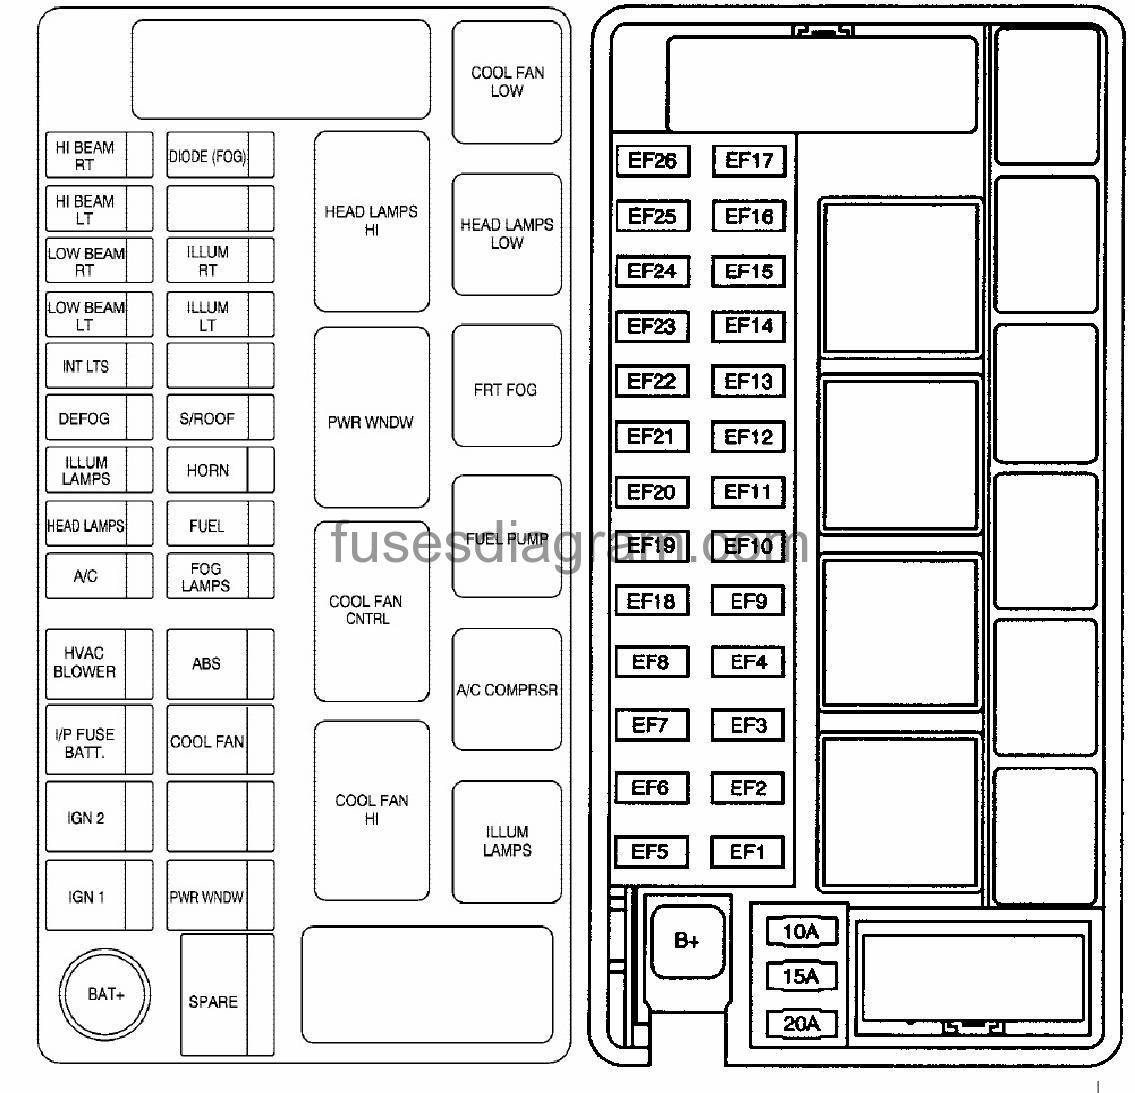 hight resolution of wrg 3746 daewoo matiz radio fusefuse box chevrolet aveo type 1 daewoo matiz